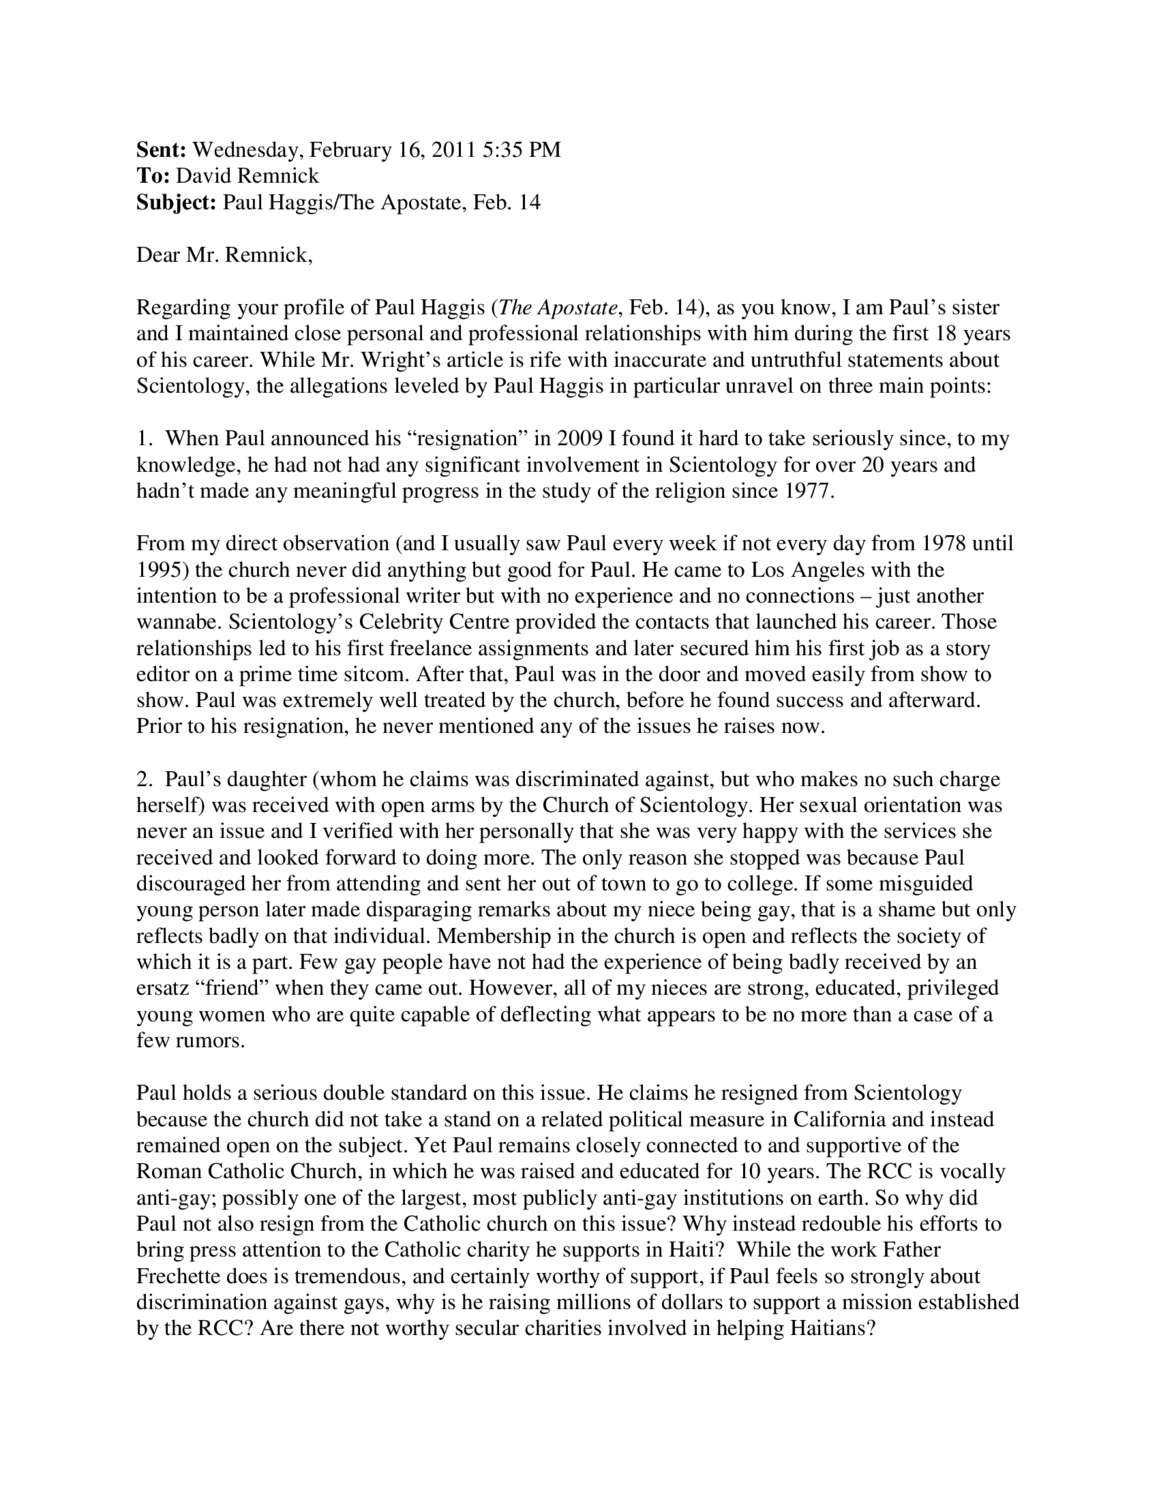 Paul Haggis Letter Of Resignation From The Church Of Scientology